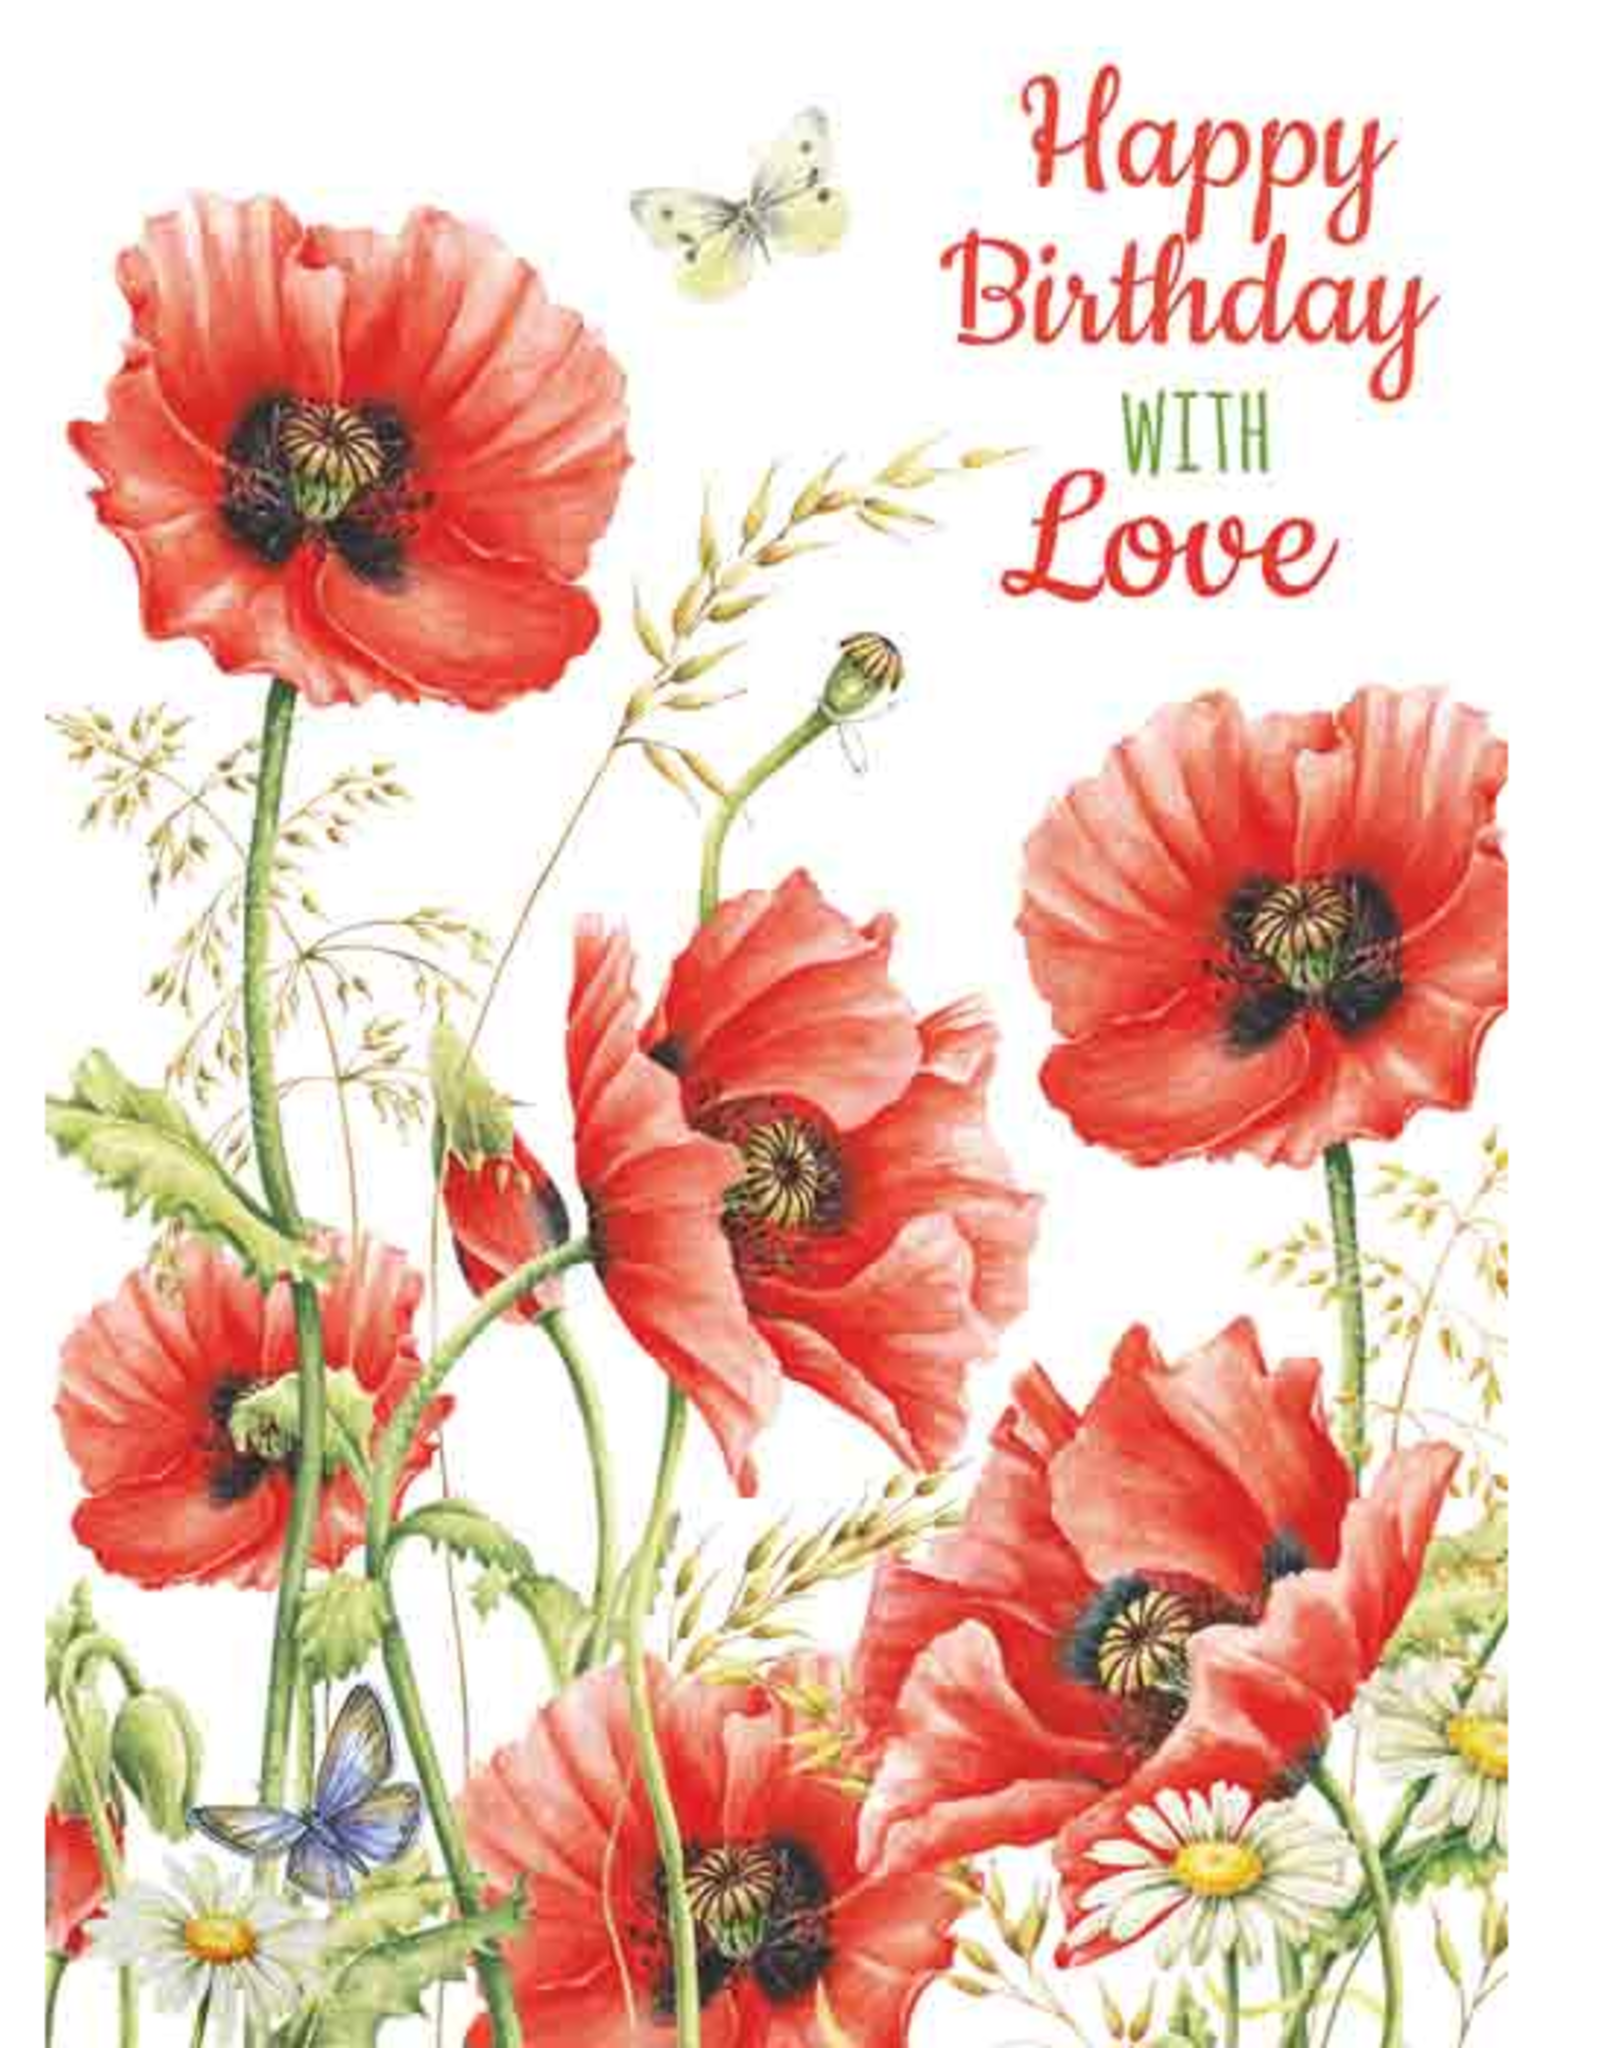 Wenskaart Happy Birthday With Love -  Janneke Brinkman